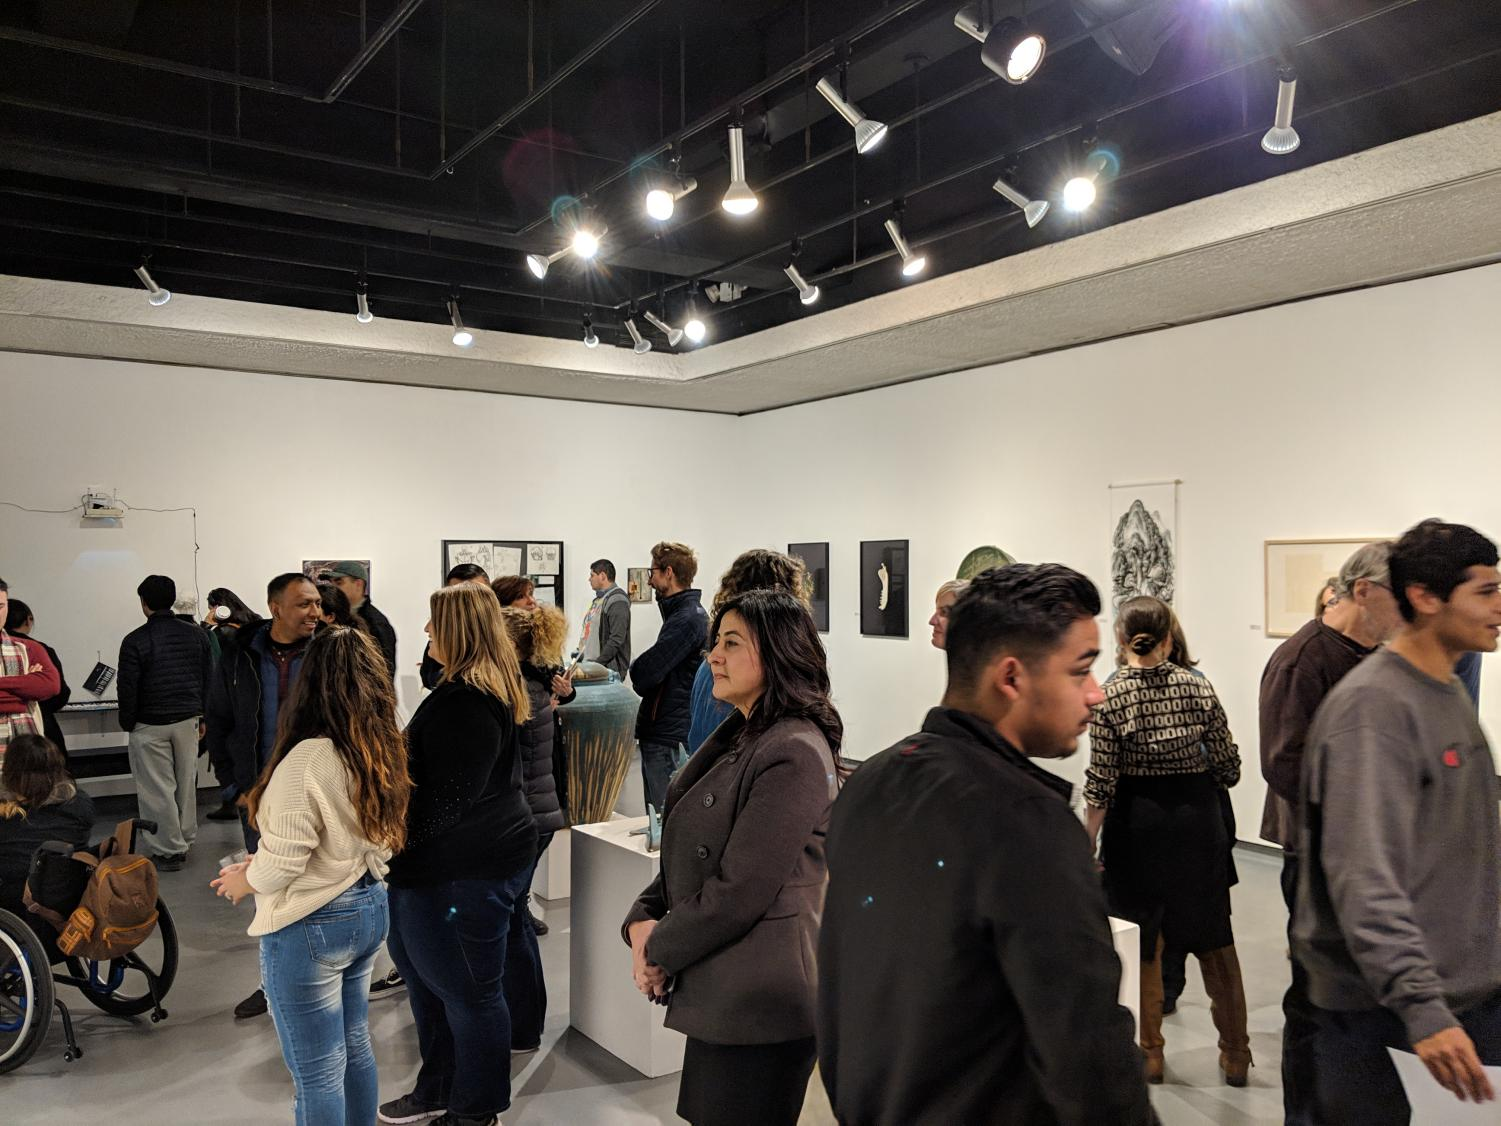 Before commencing the art show, Art Gallery Director Robert Miller advised those who were present to be cautious of the art pieces displayed in the middle of the show floor. Students who took time from their classes to attend the show listened to the interesting backstories that accompanied the art pieces.